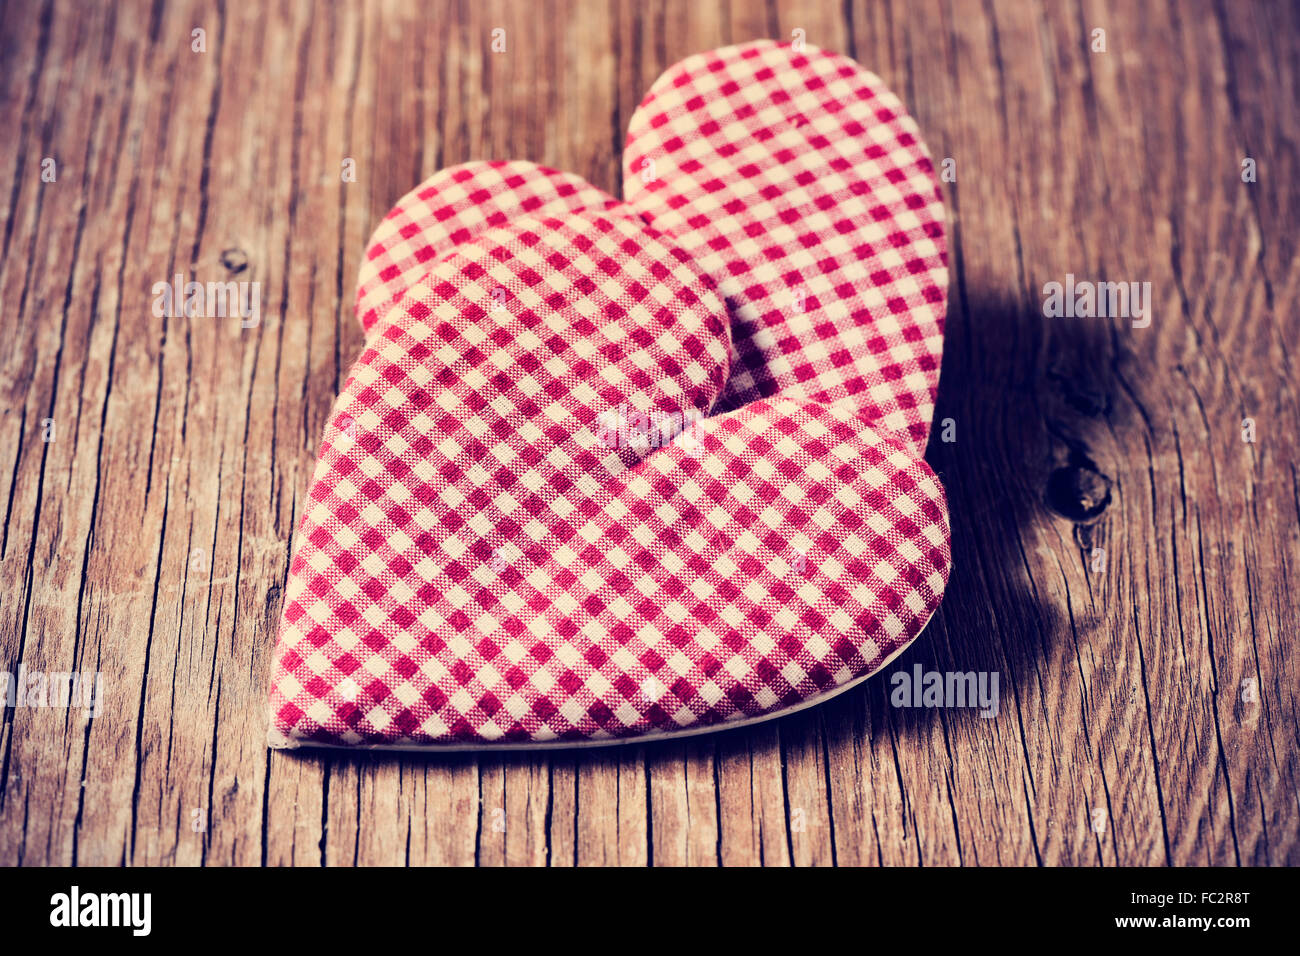 two red and white checkered hearts on a rustic wooden surface - Stock Image